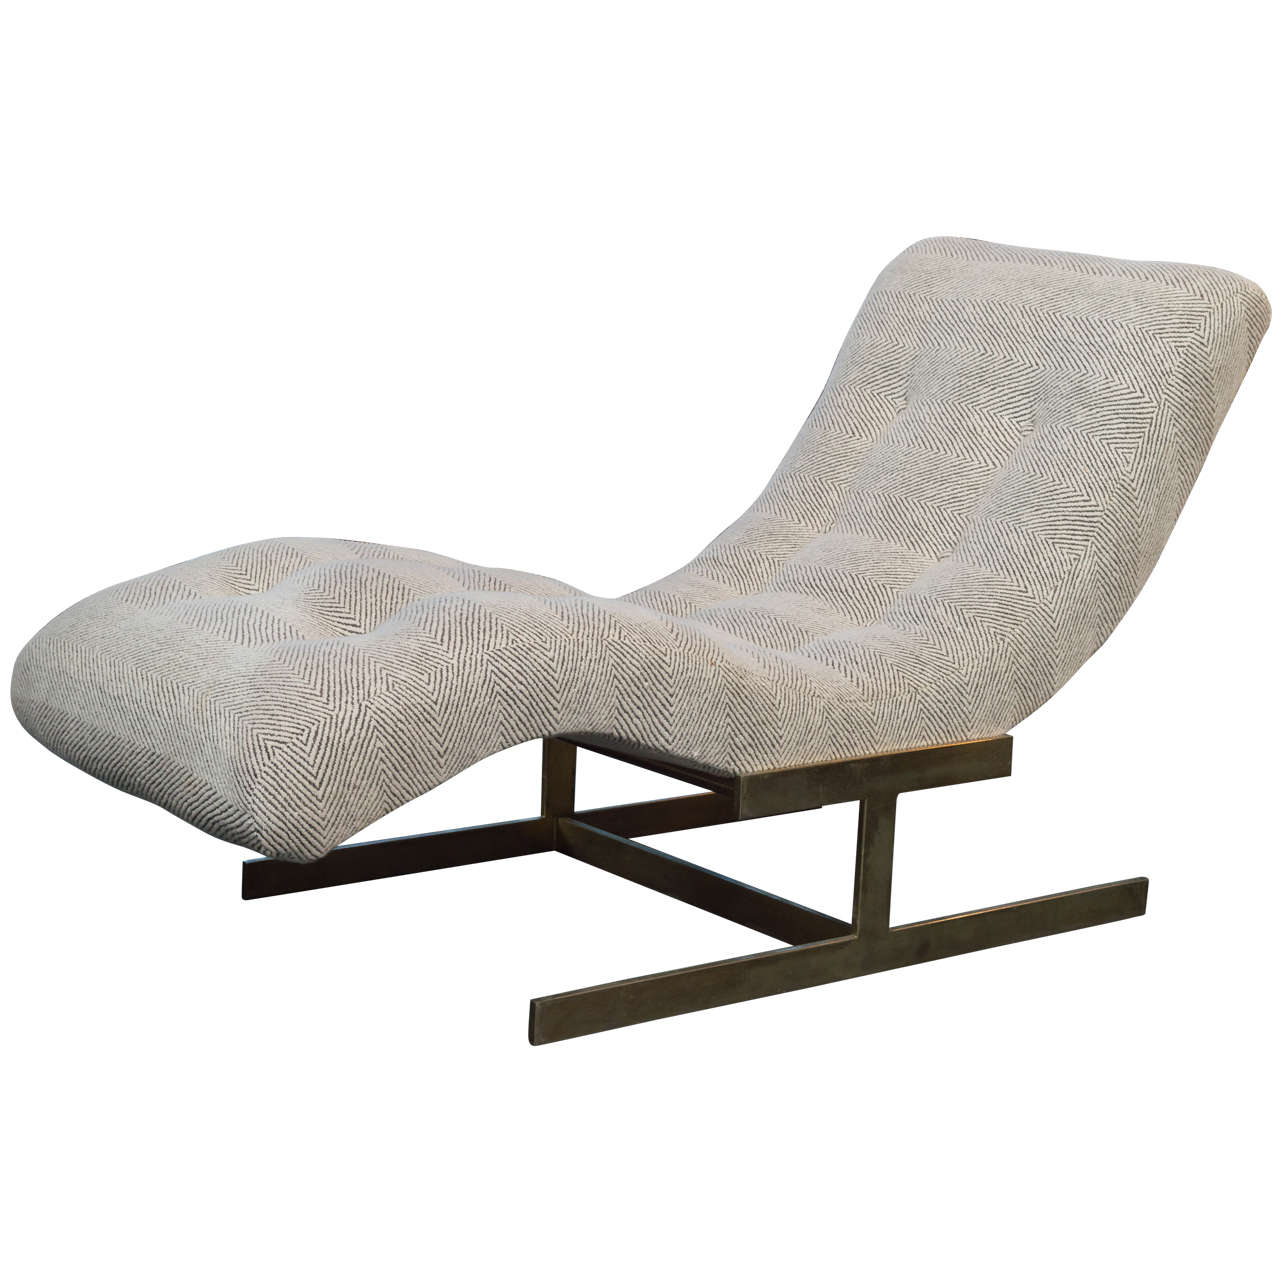 Sculptural Wave Chaise Lounge at 1stdibs